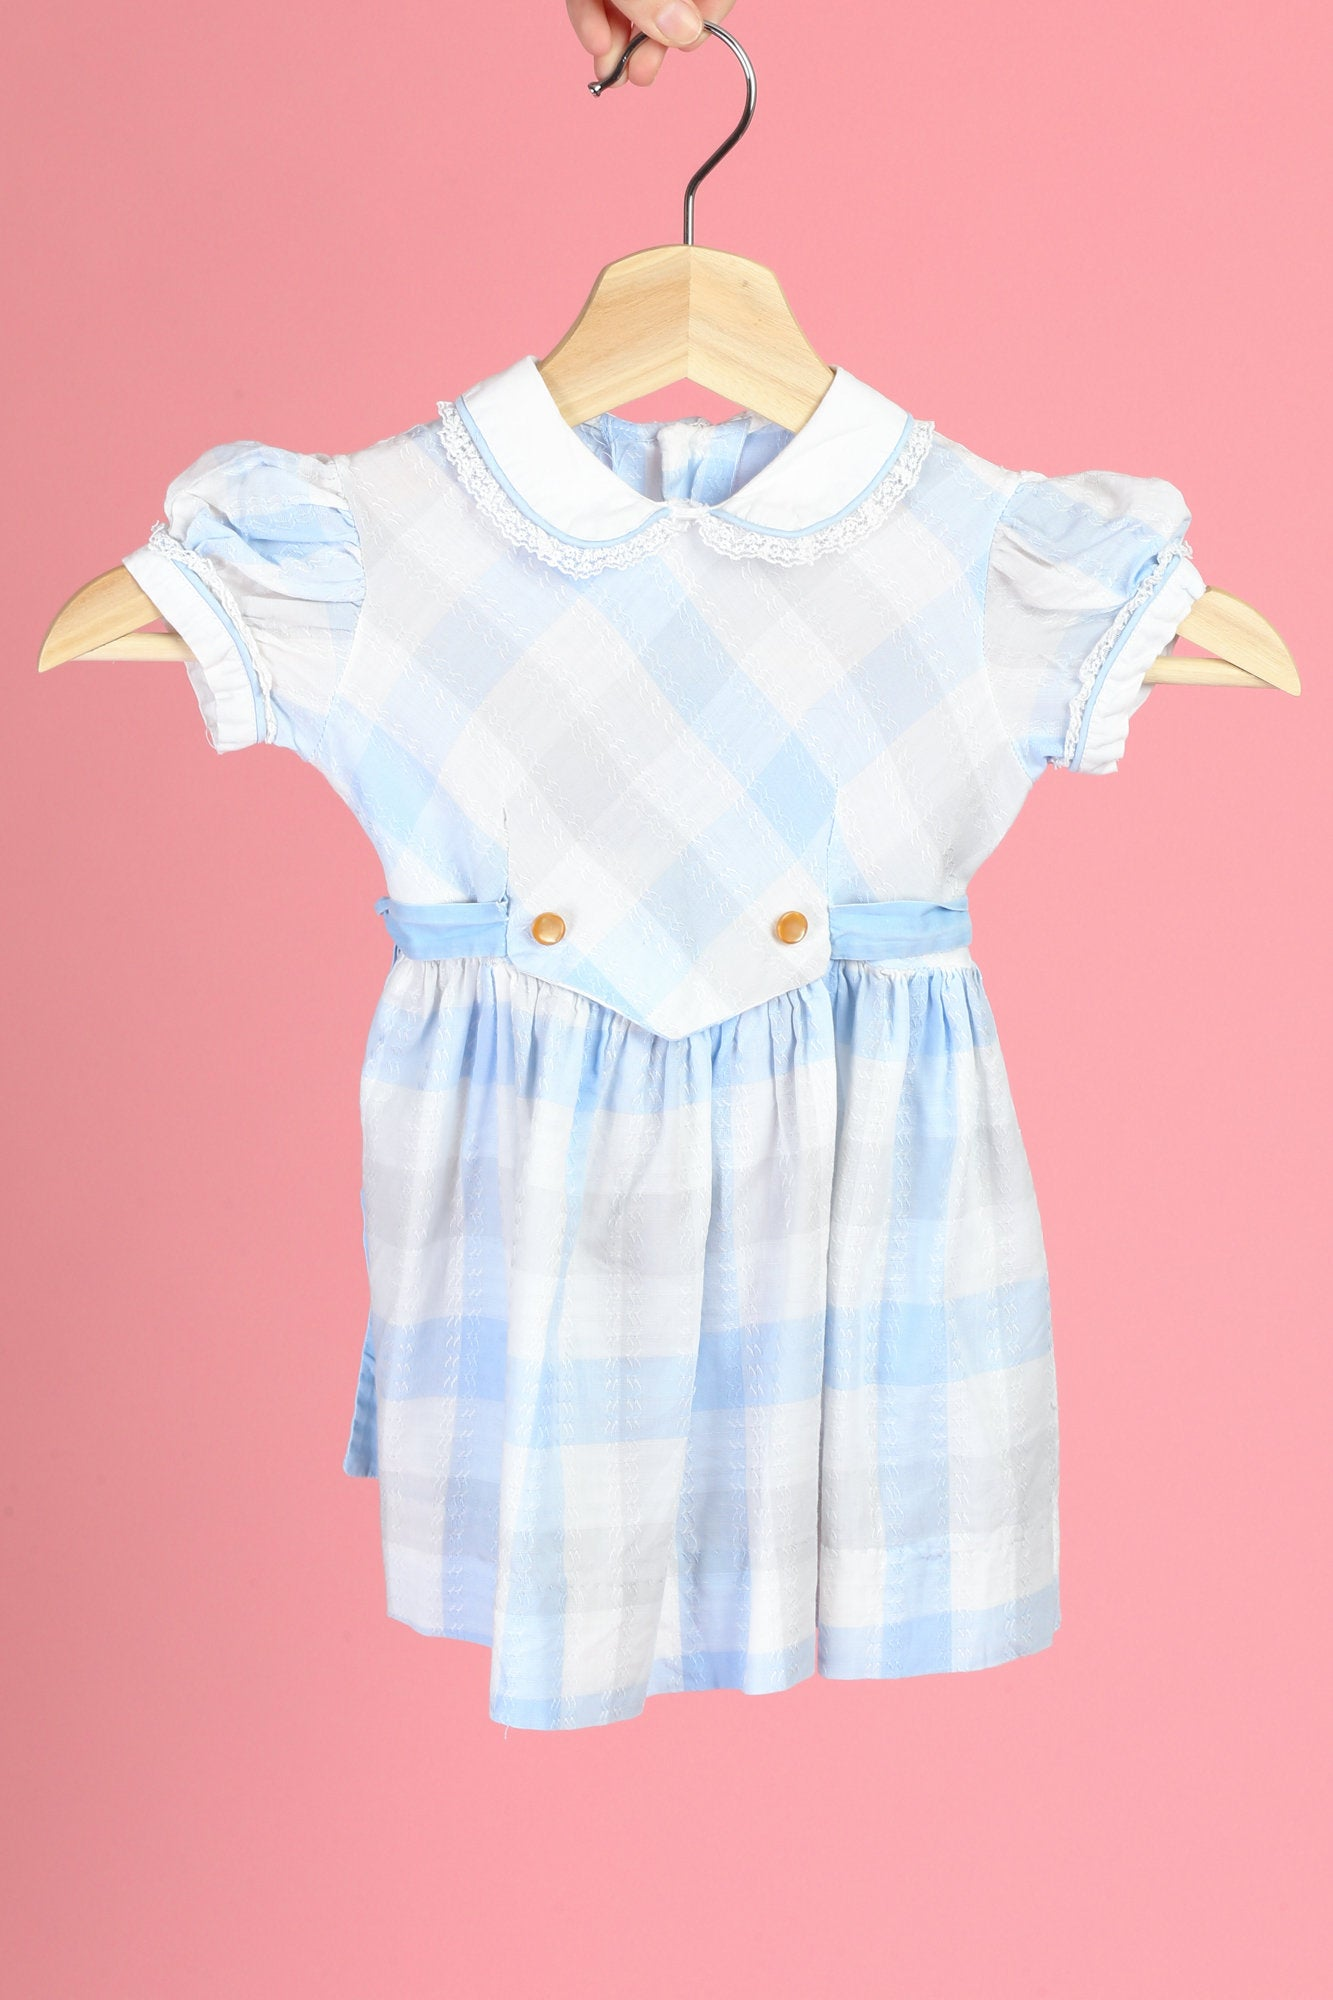 60s Baby Girl's Gingham Peter Pan Collar Dress - 18-24 Months